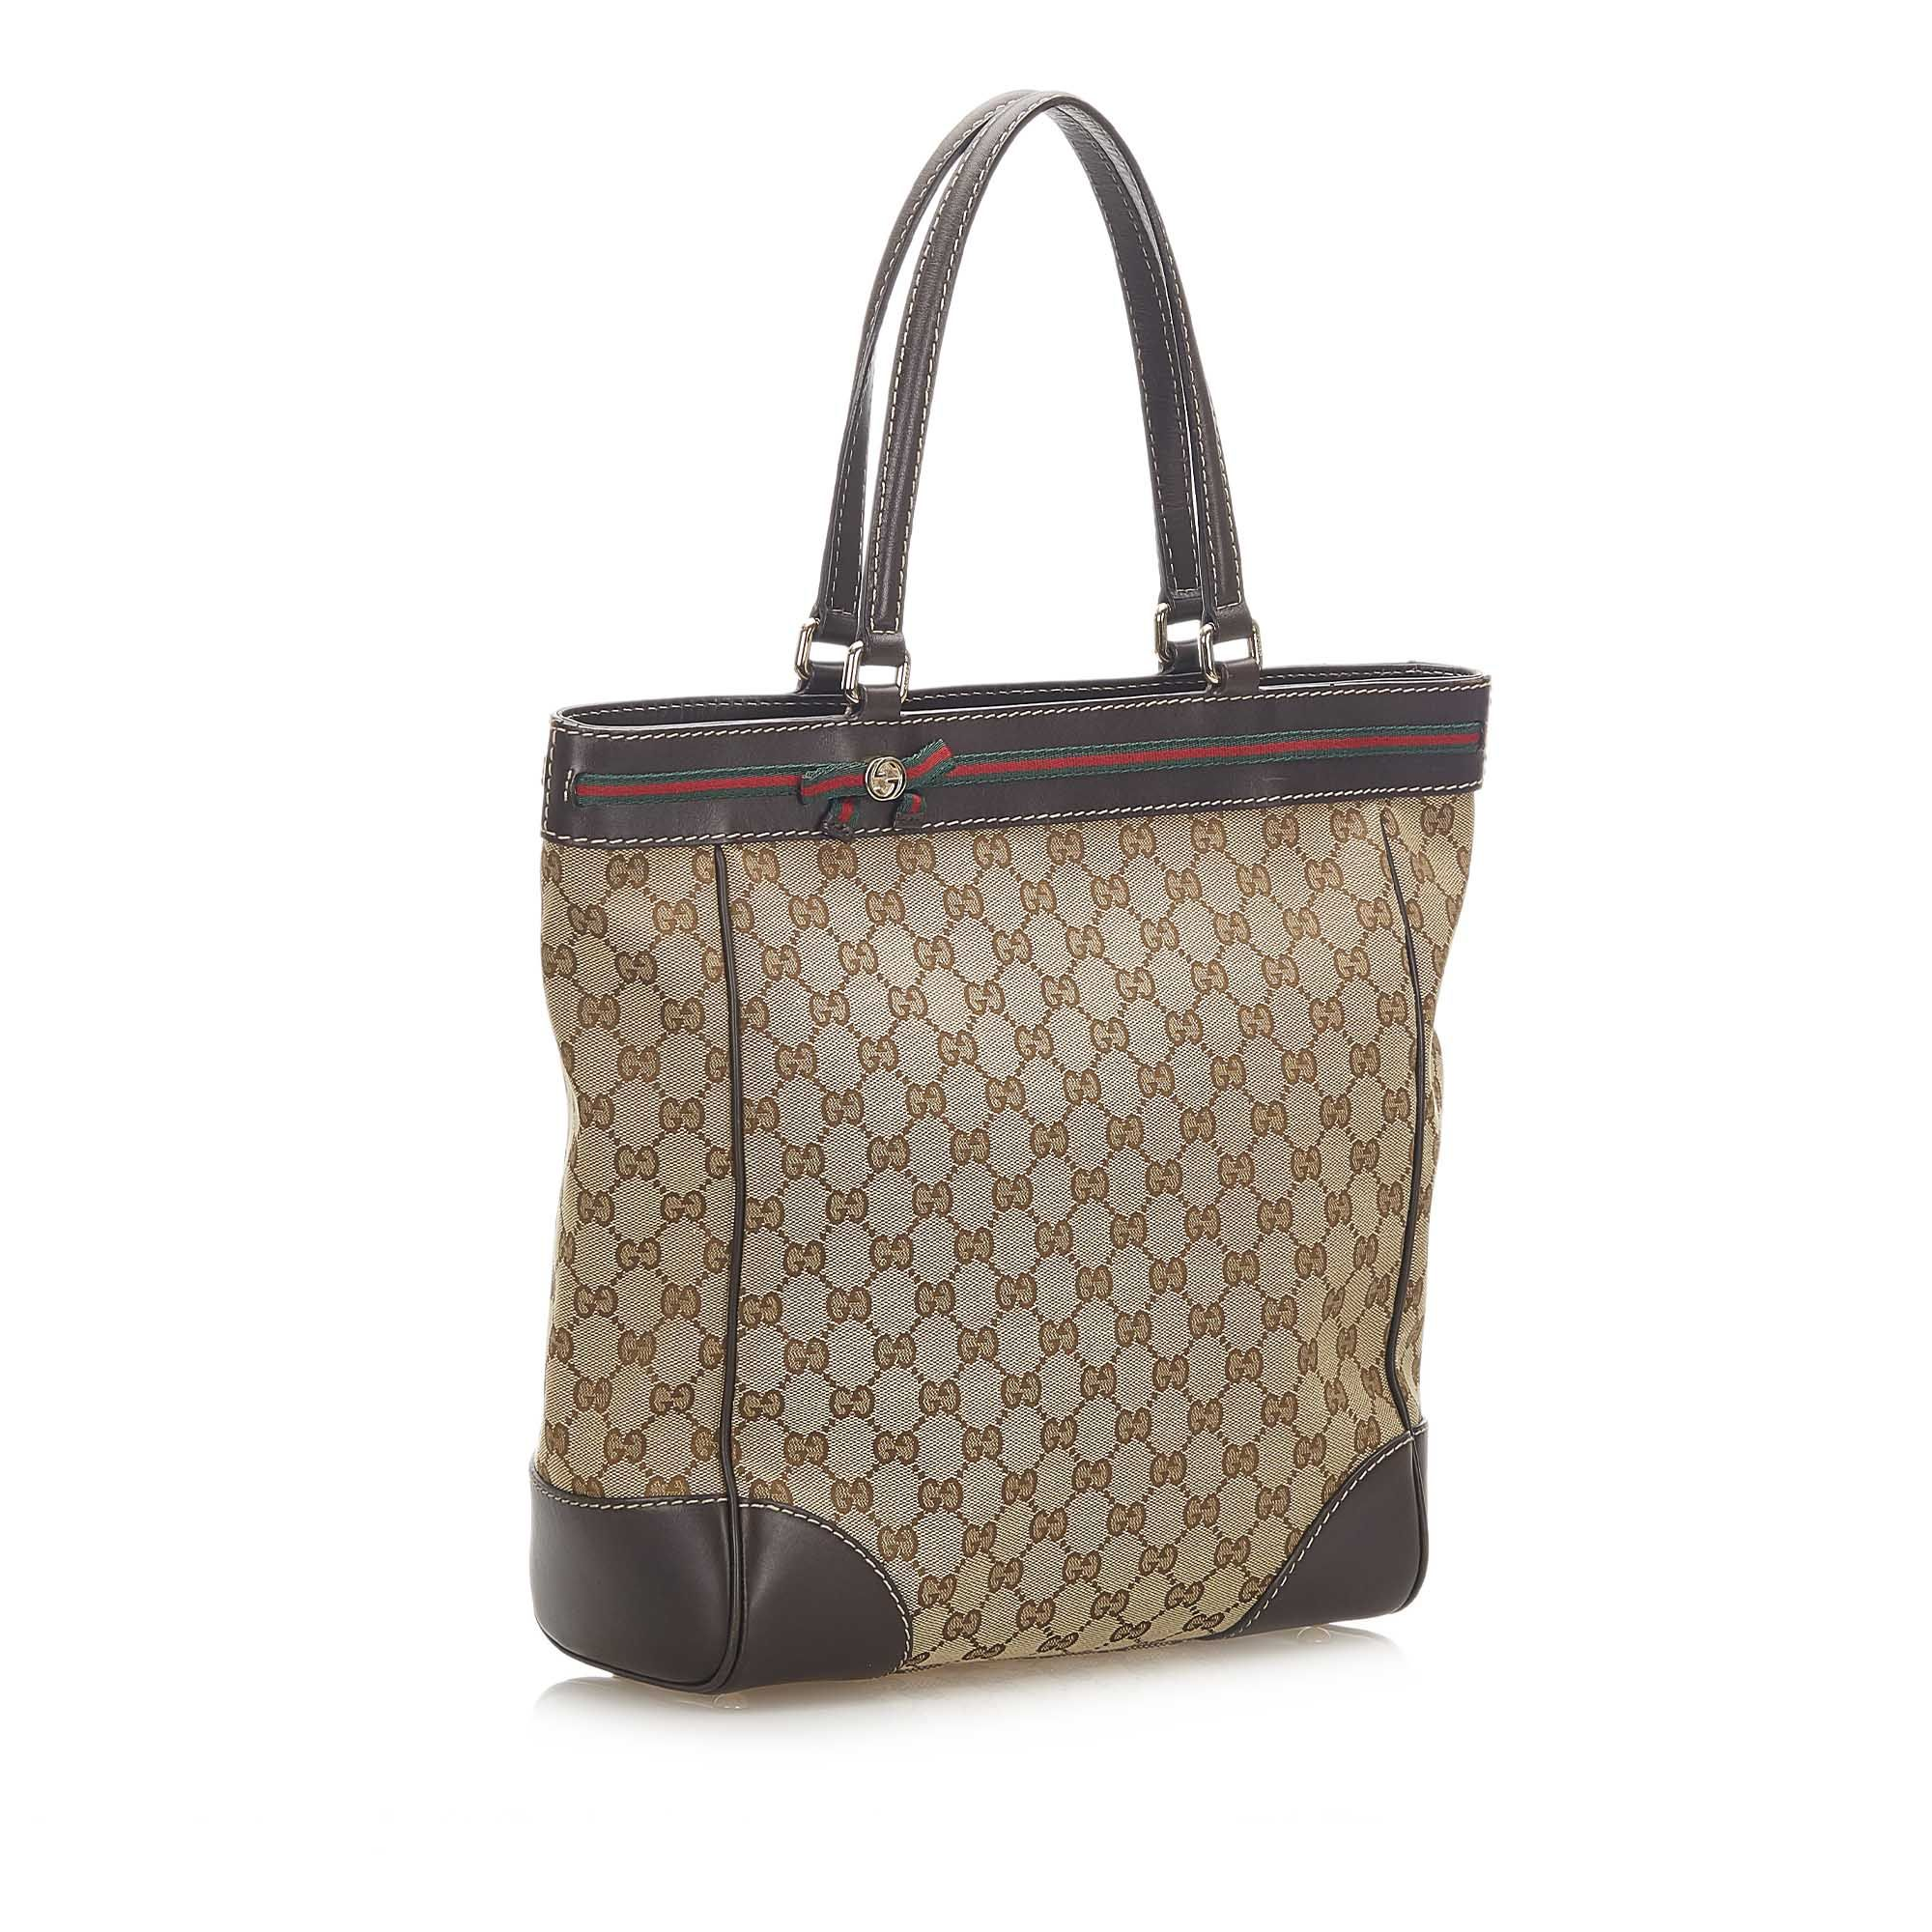 Vintage Gucci GG Canvas Mayfair Tote Brown